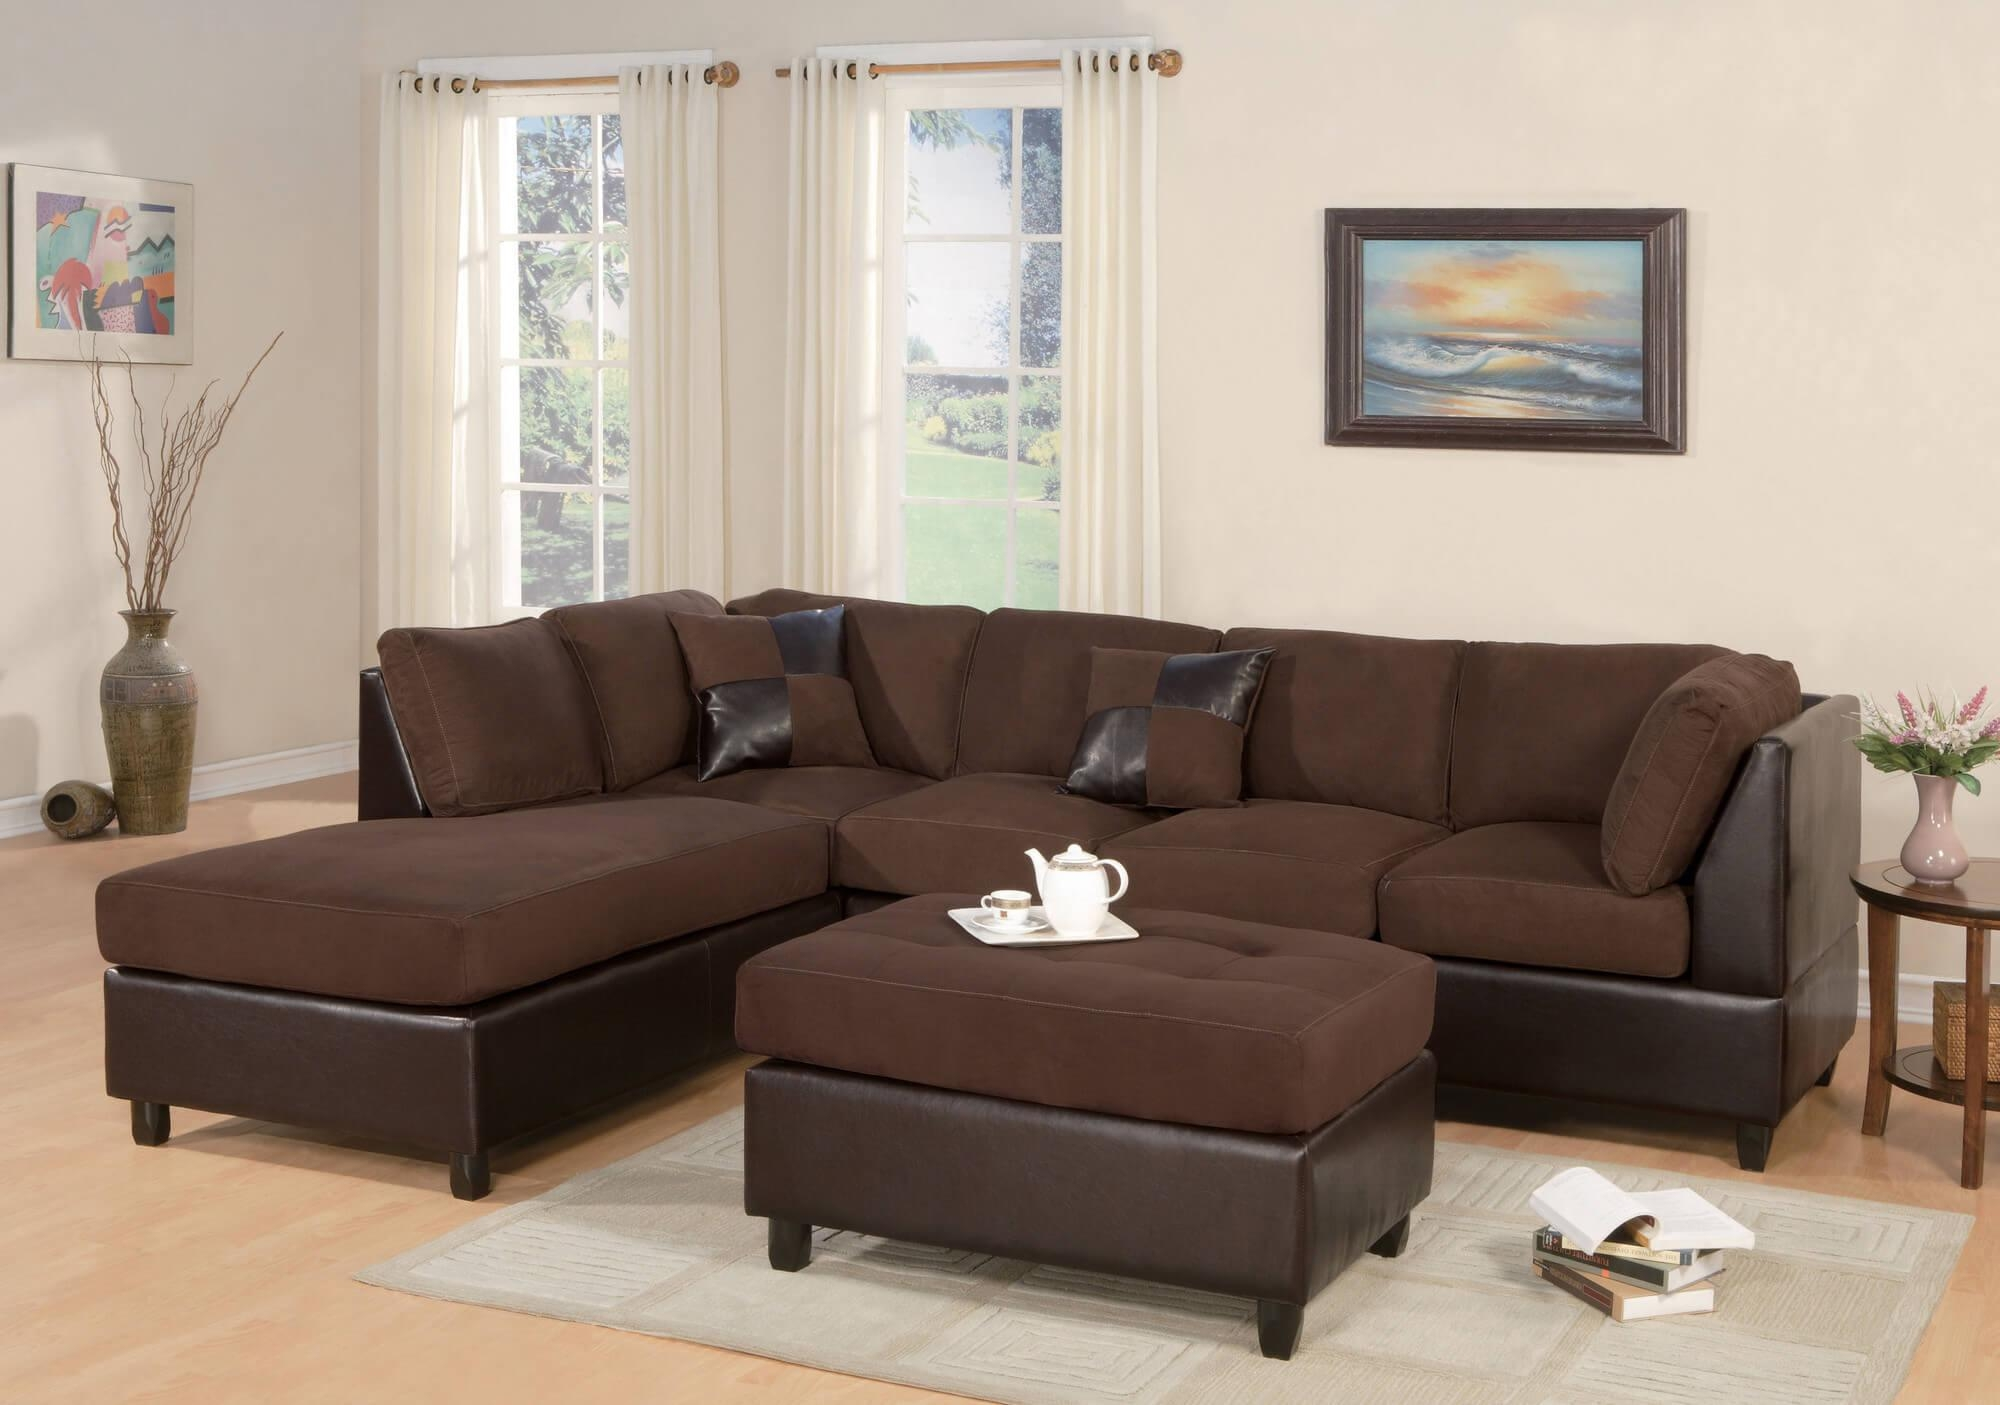 Sofas Center : Glamorous Sectional Sofas Big Lots For Rooms To Inside Big Lots Couches (View 18 of 20)